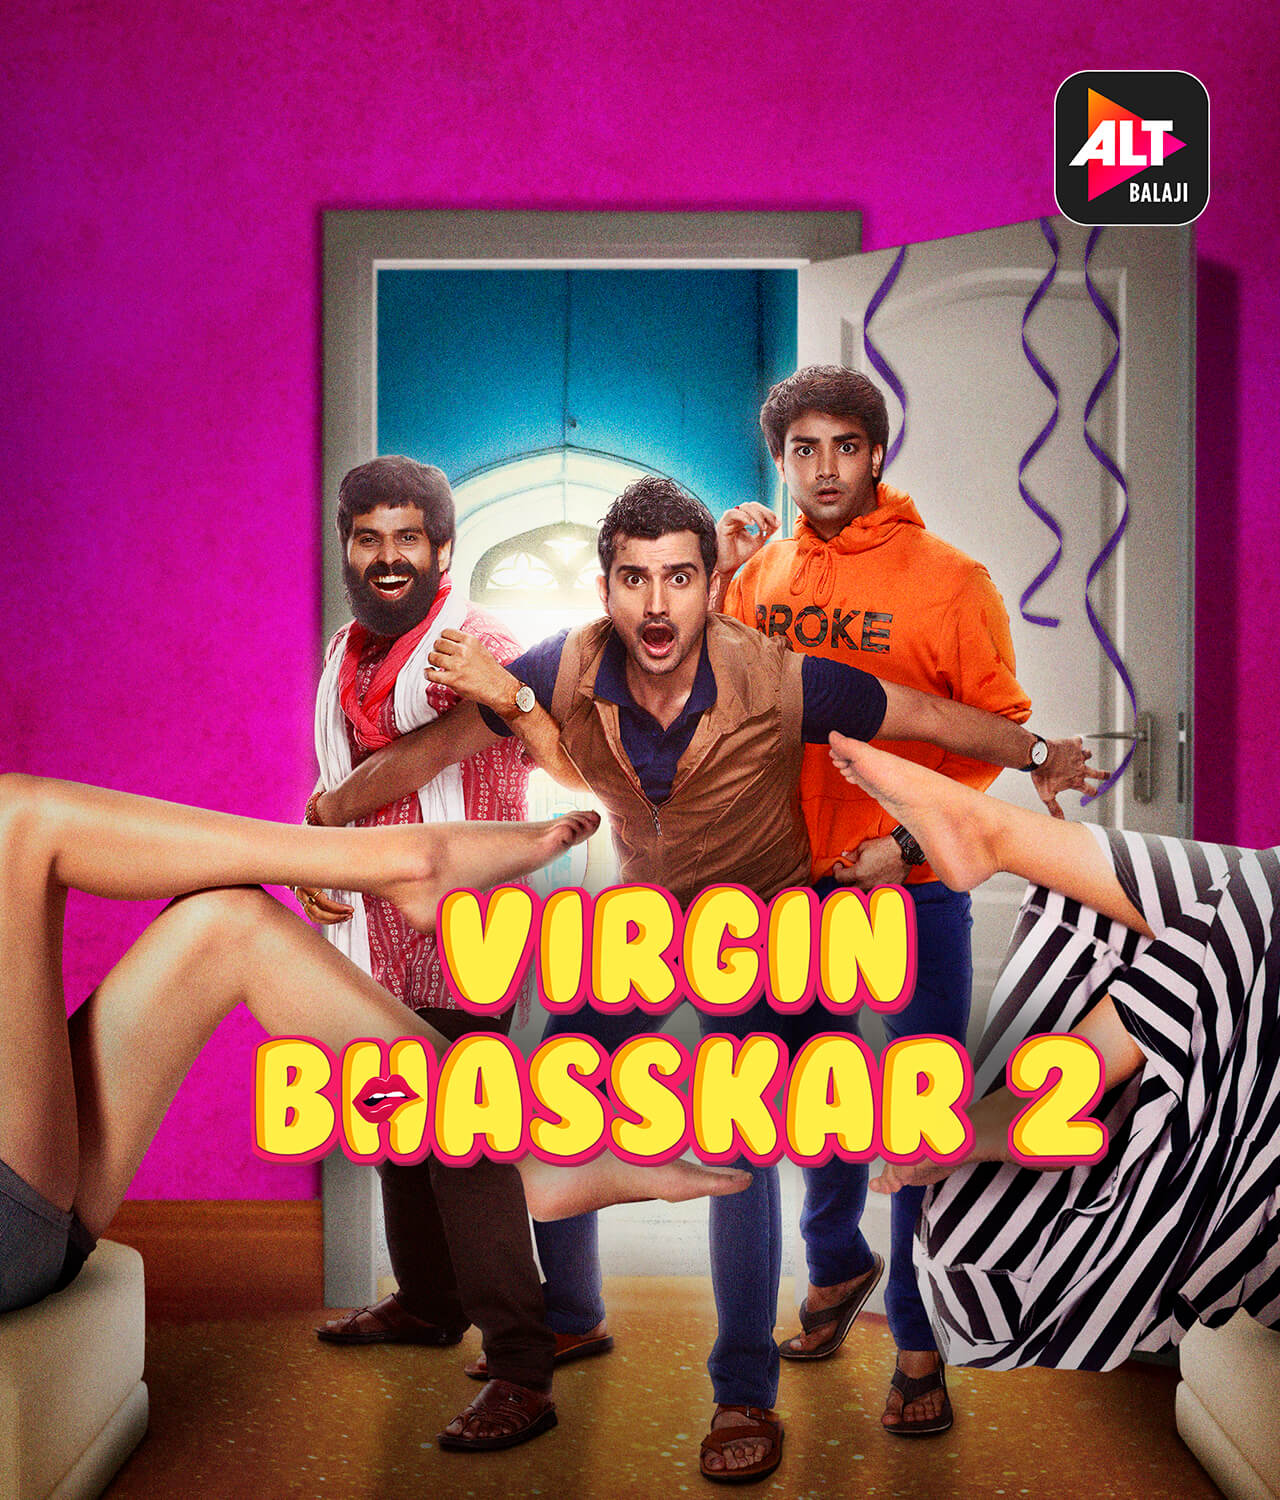 Watch The Best Of Web Series Originals Movies Online In Hd Only On Altbalaji